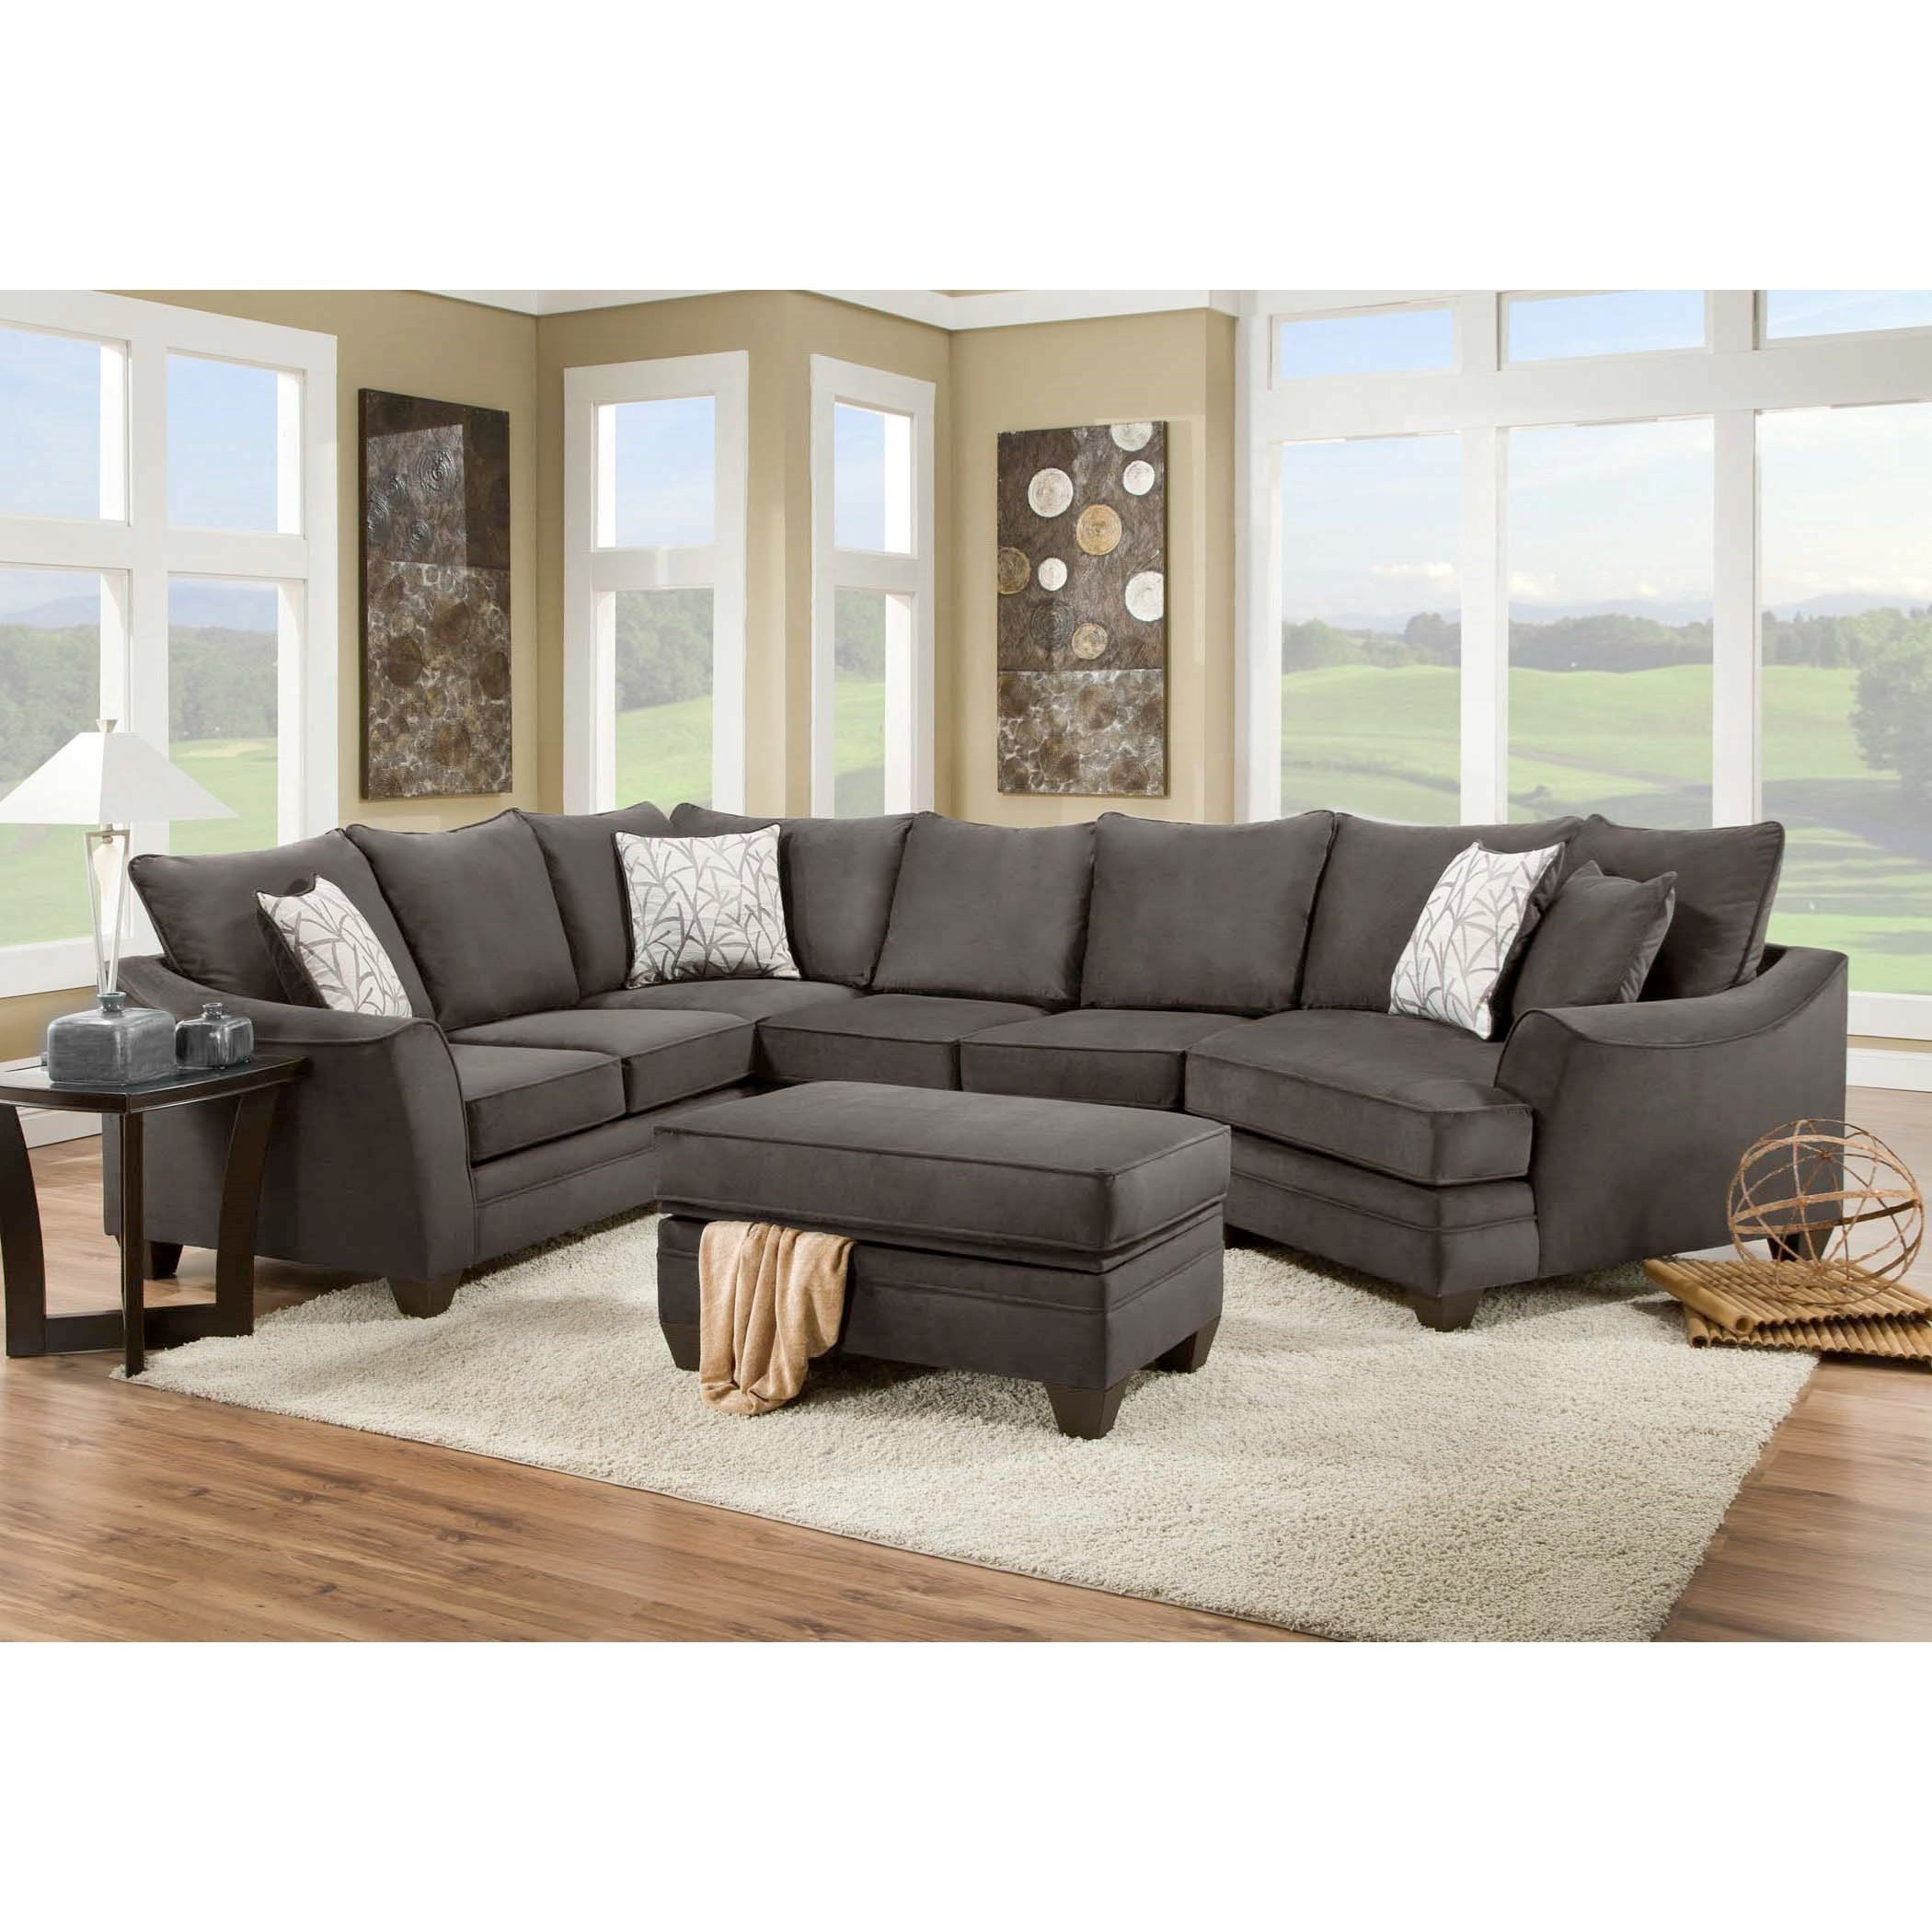 Charmant American Furniture 3810 Sectional Sofa That Seats 5 With Right Side Cuddler